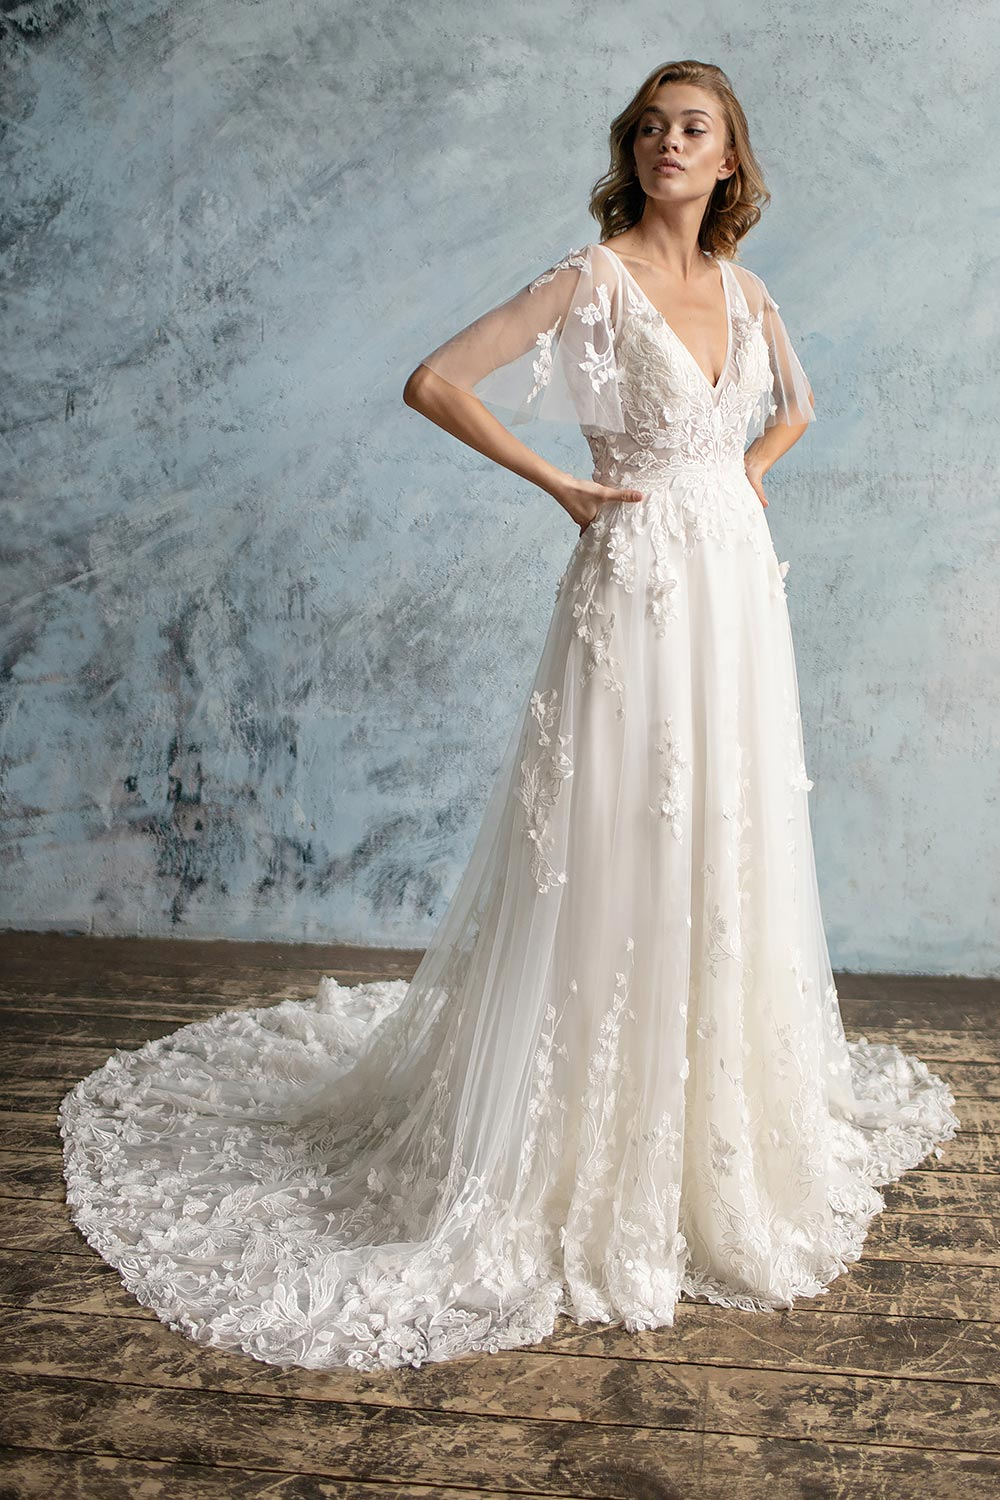 bridal shop near me wedding dress shop near me wedding dress near me wedding dress with sleeves 3